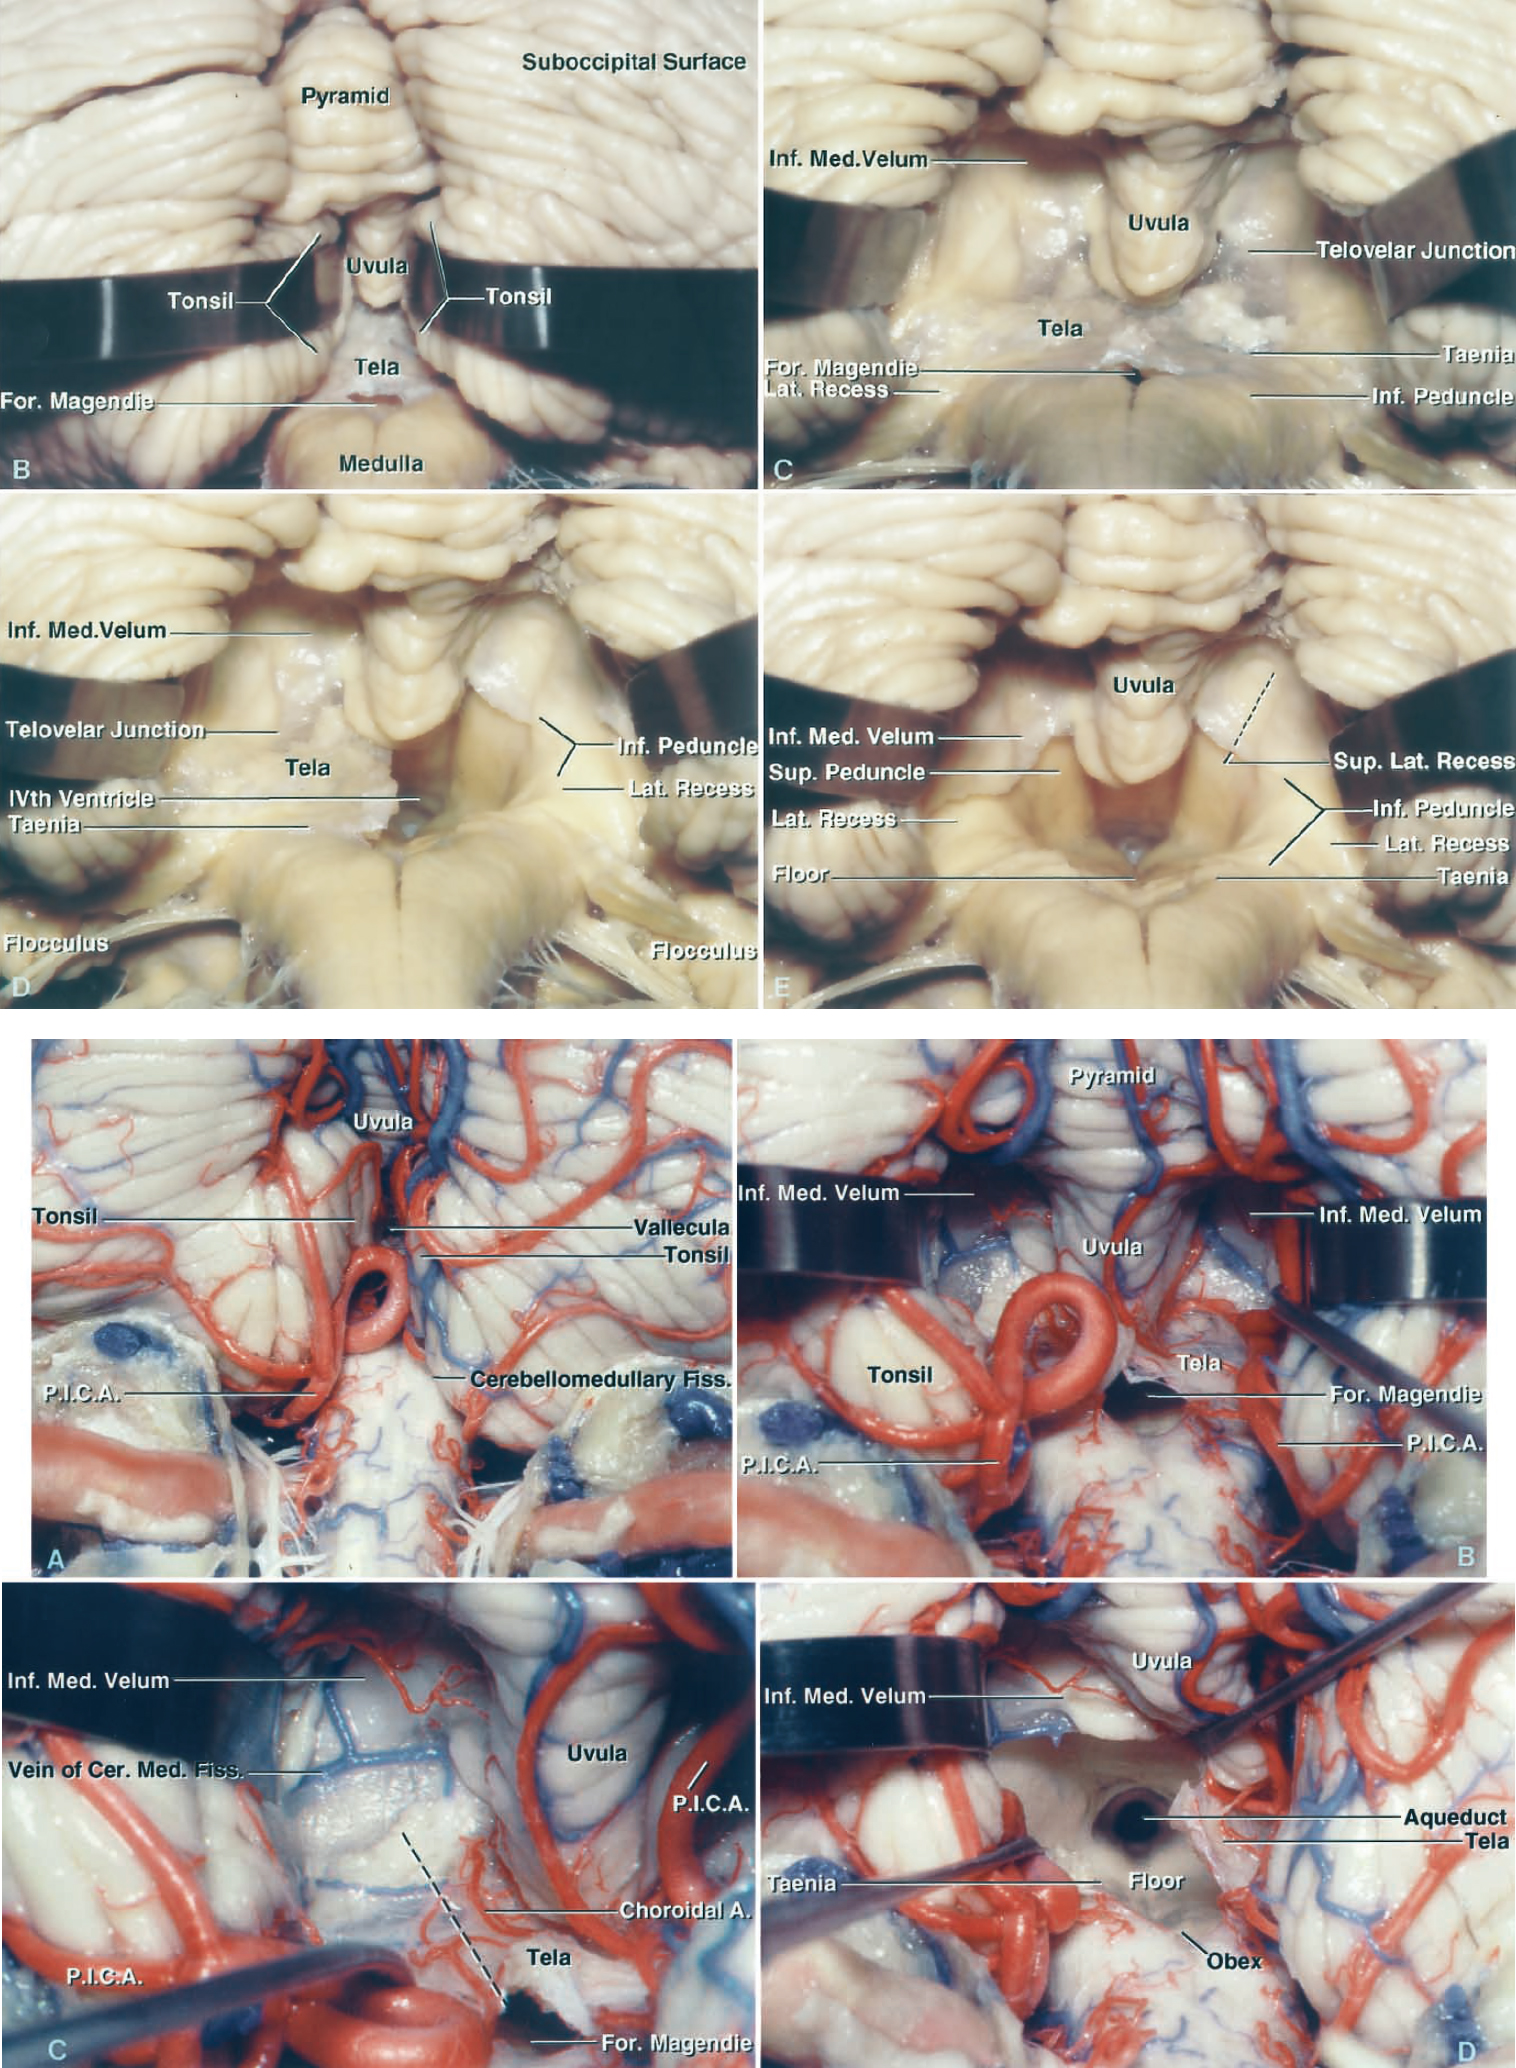 Figure 5: More images demonstrating the operative steps in the telovelar approach through incising the tela choroidea and inferior medullary velum. (Images courtesy of AL Rhoton, Jr.)